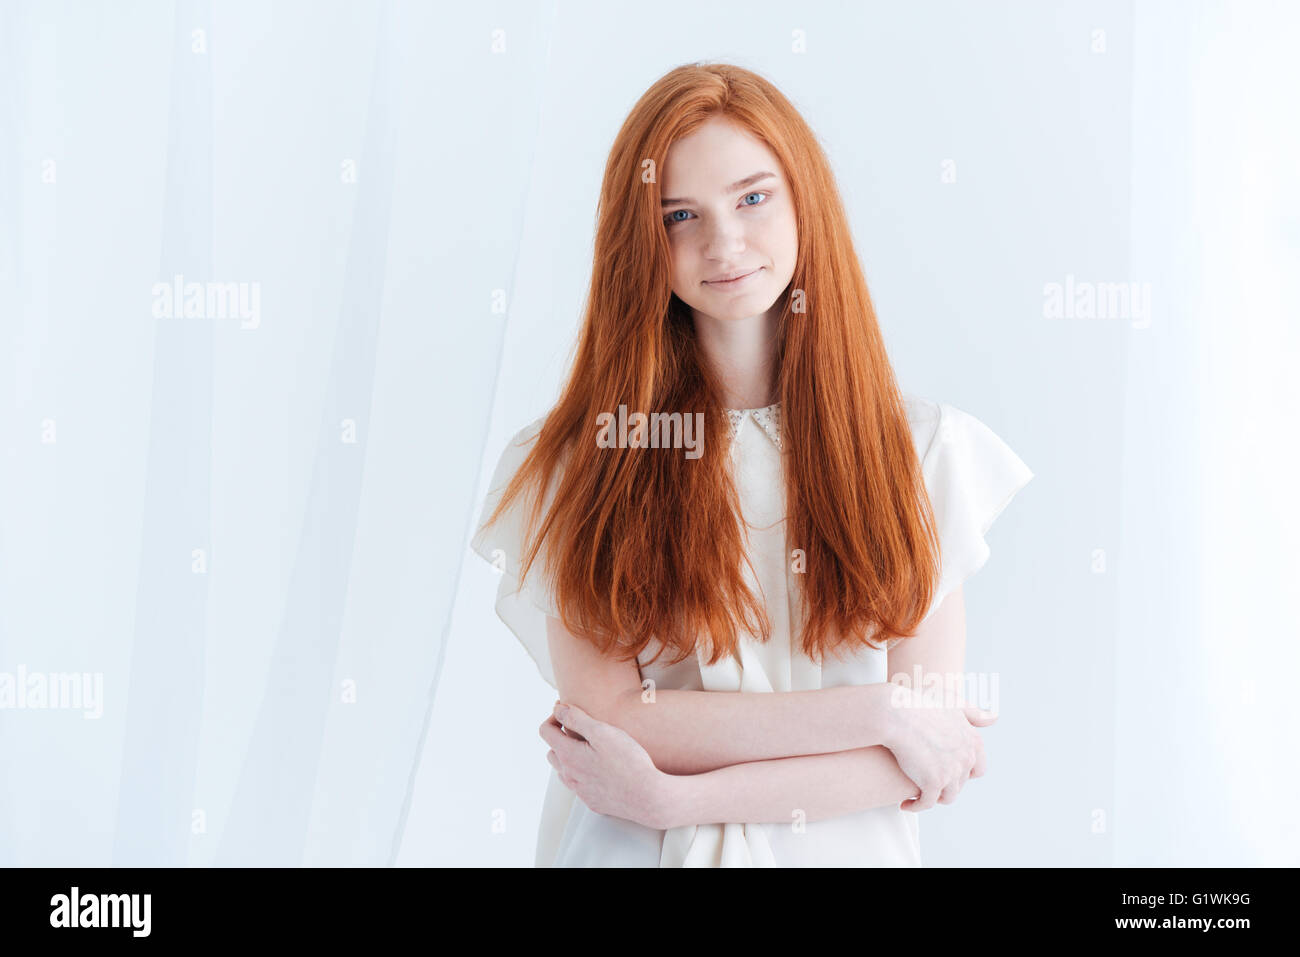 For redhead woman posing tempting